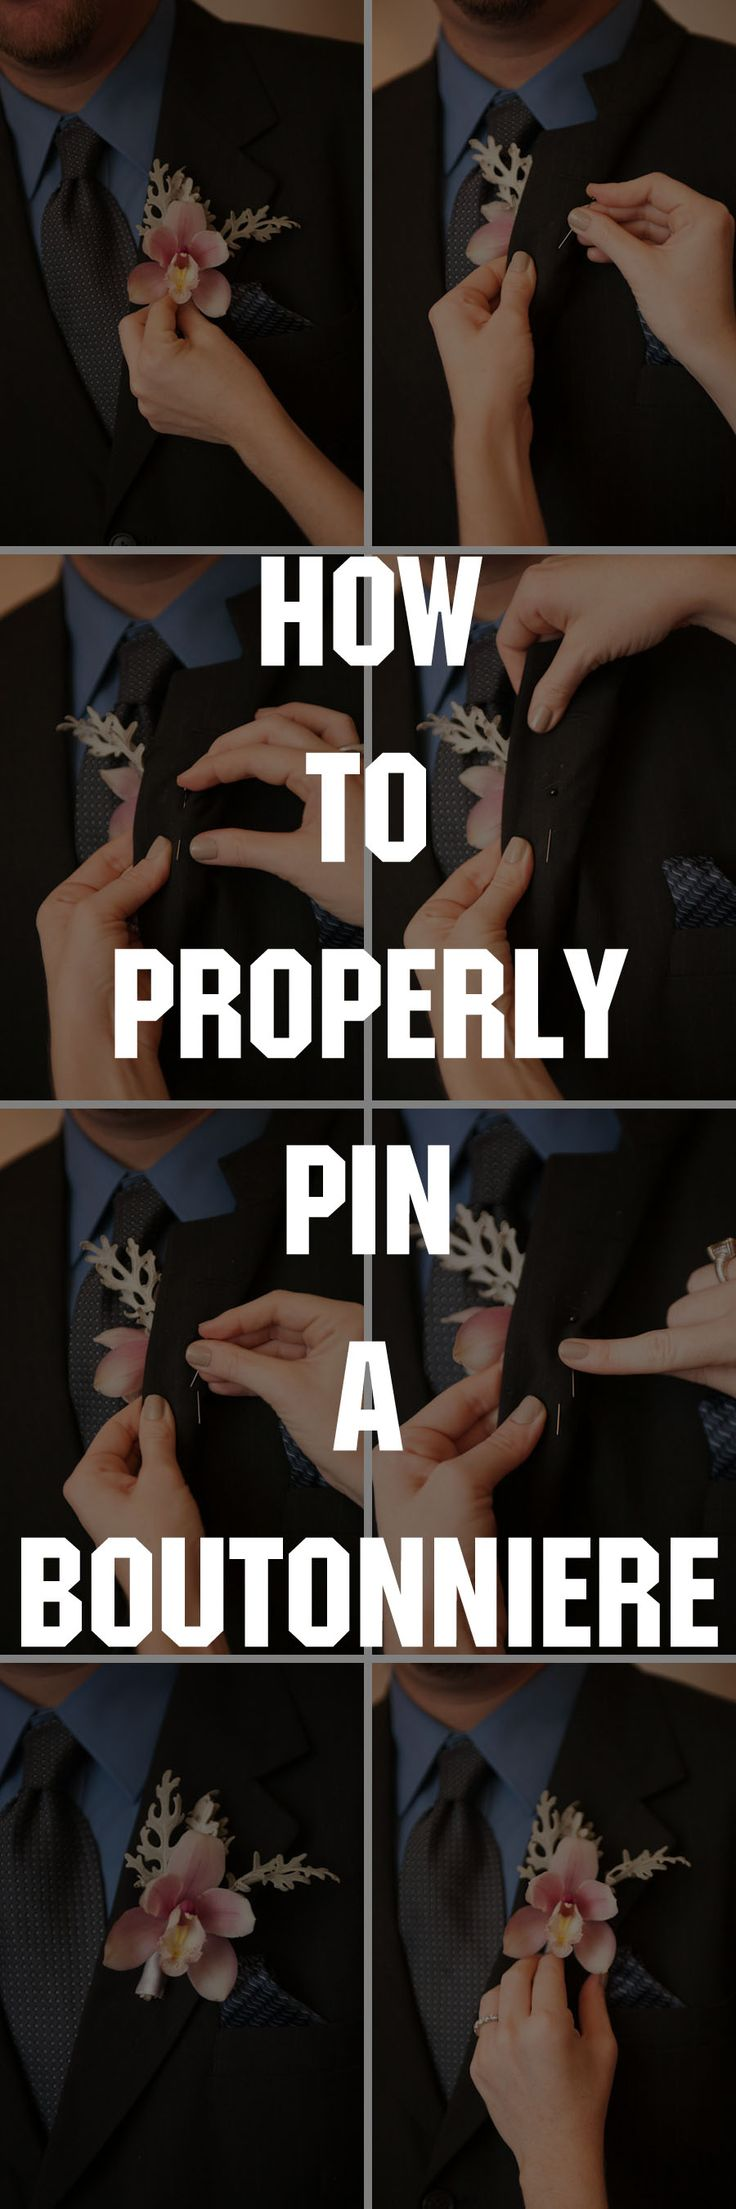 How to Properly Pin a Boutonniere - click for a walkthrough. #wedding #flowers #grooms